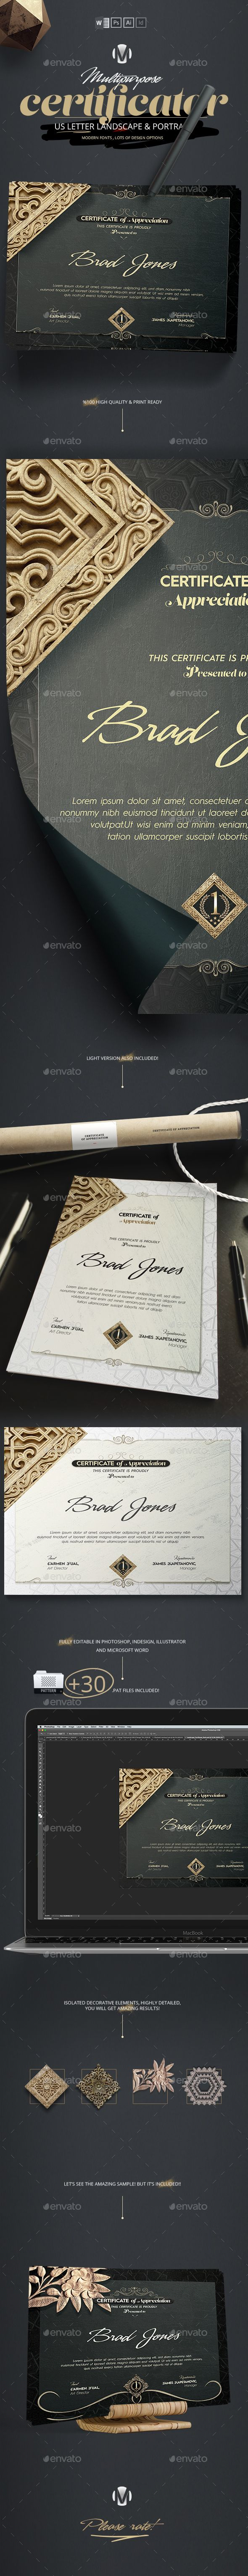 Certificator pinterest certificate certificate design and template quickly create a professional looking certificate of appreciation certificate for any company using this yelopaper